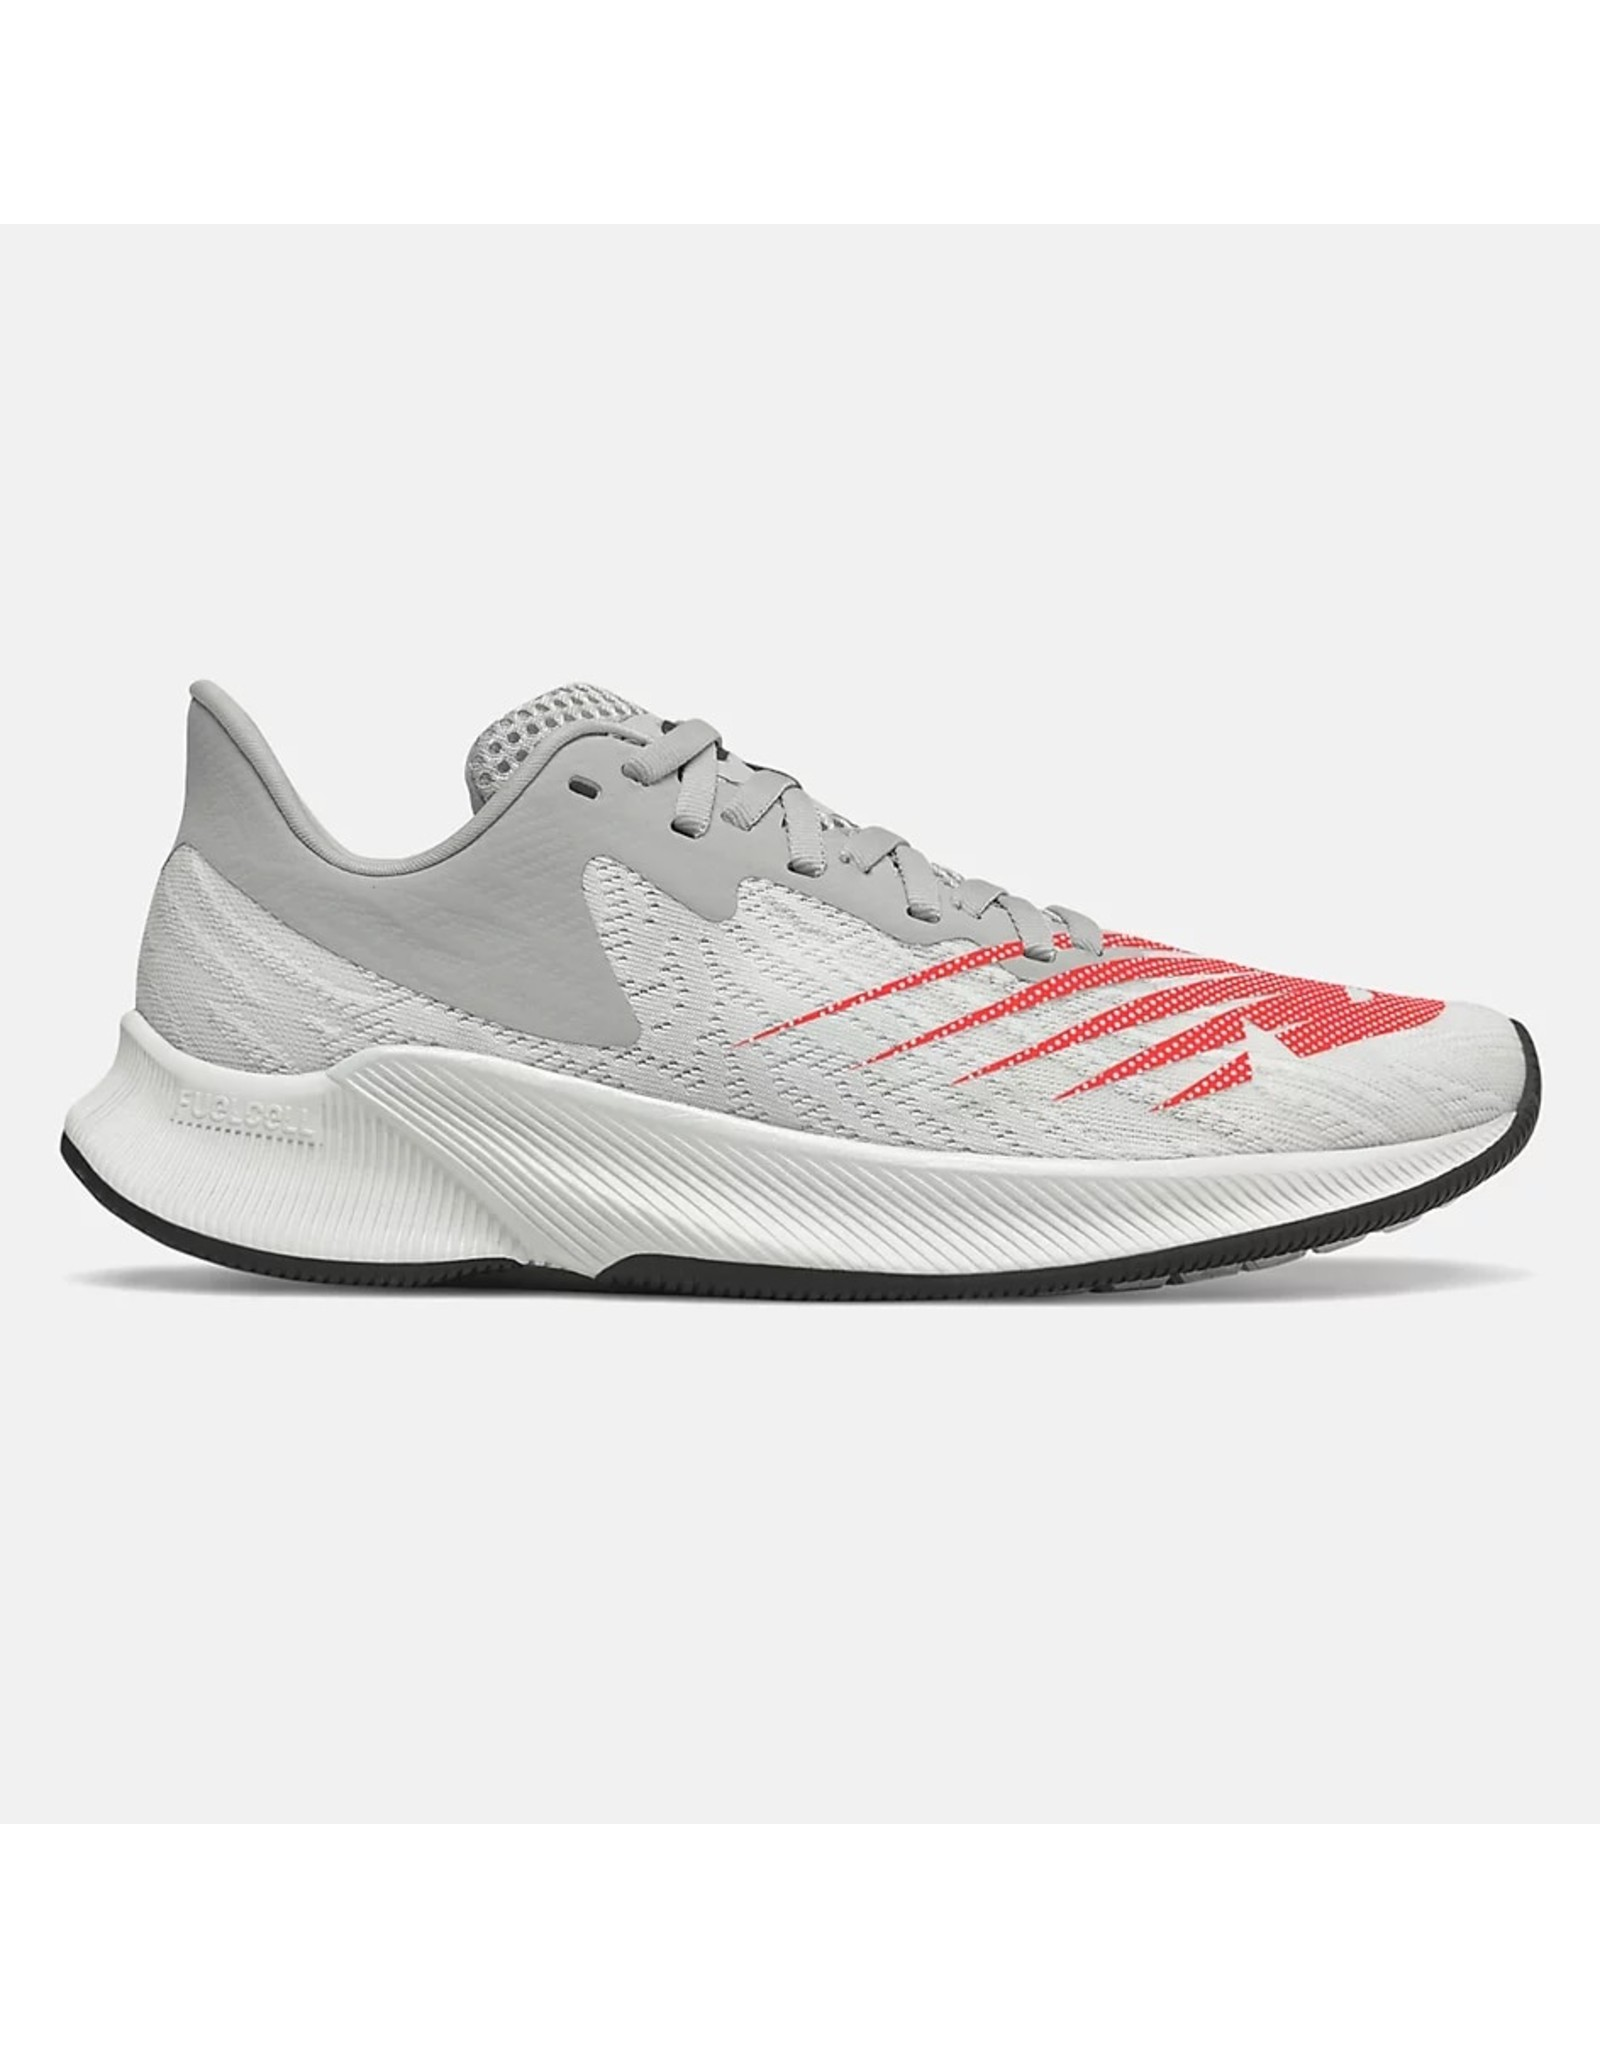 New Balance New Balance Fuel Cell Prism